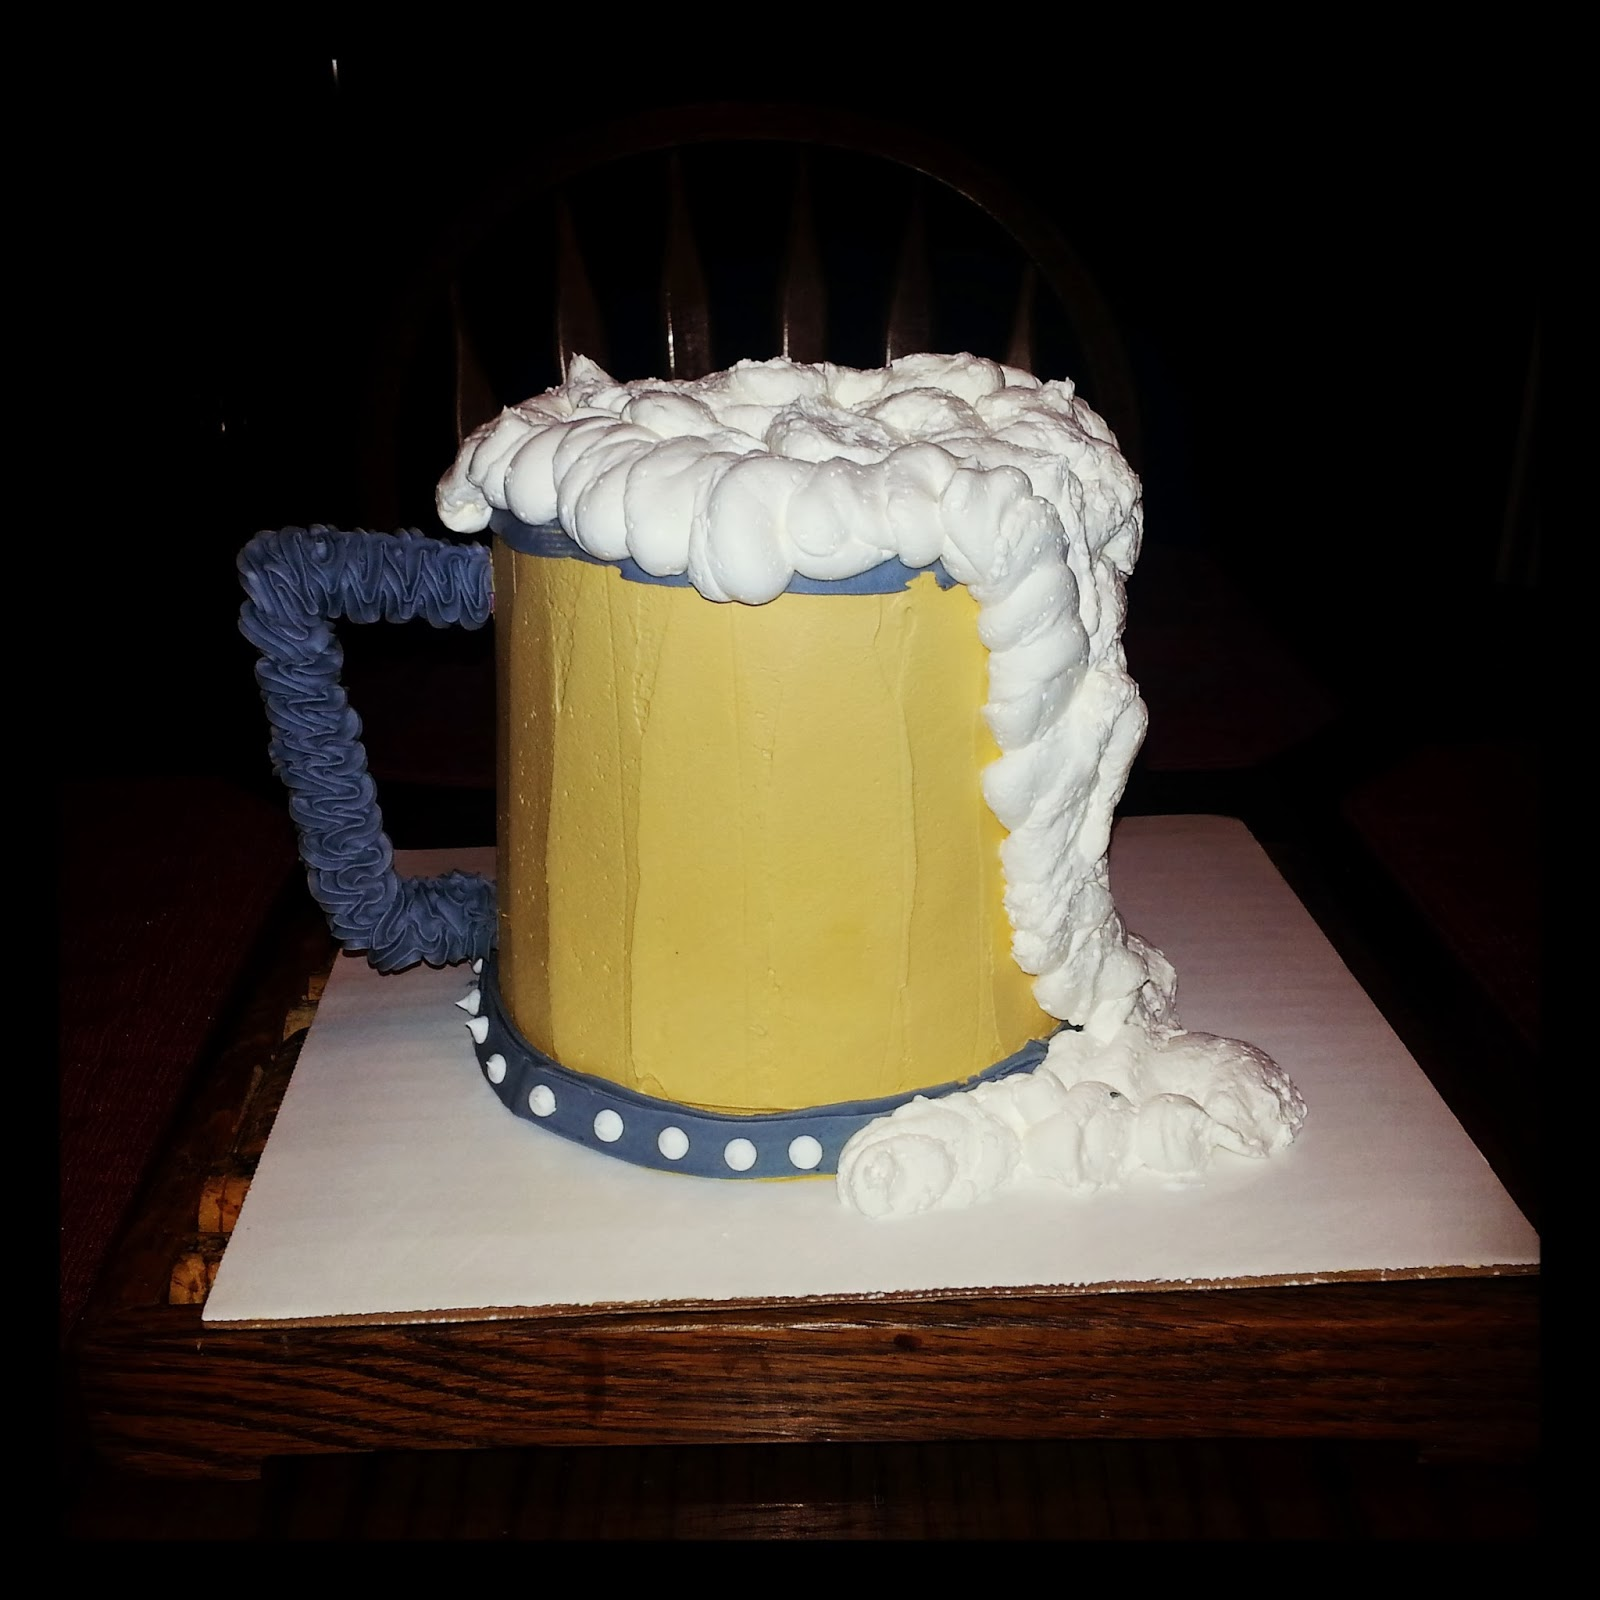 Becoming a Mrs.: The Coolest Cake You Have Ever Seen